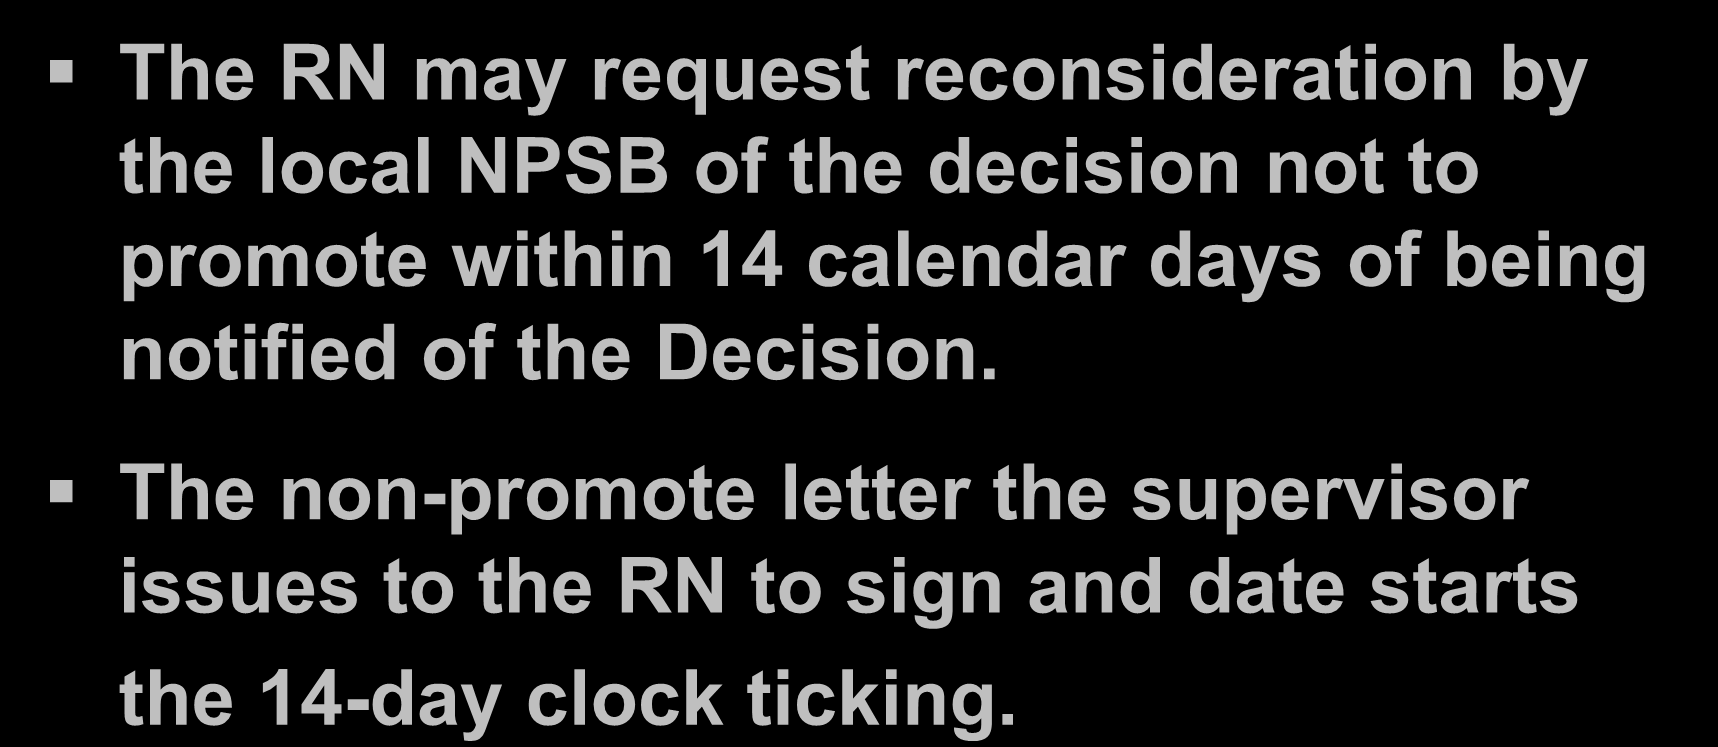 Local Reconsideration The RN may request reconsideration by the local NPSB of the decision not to promote within 14 calendar days of